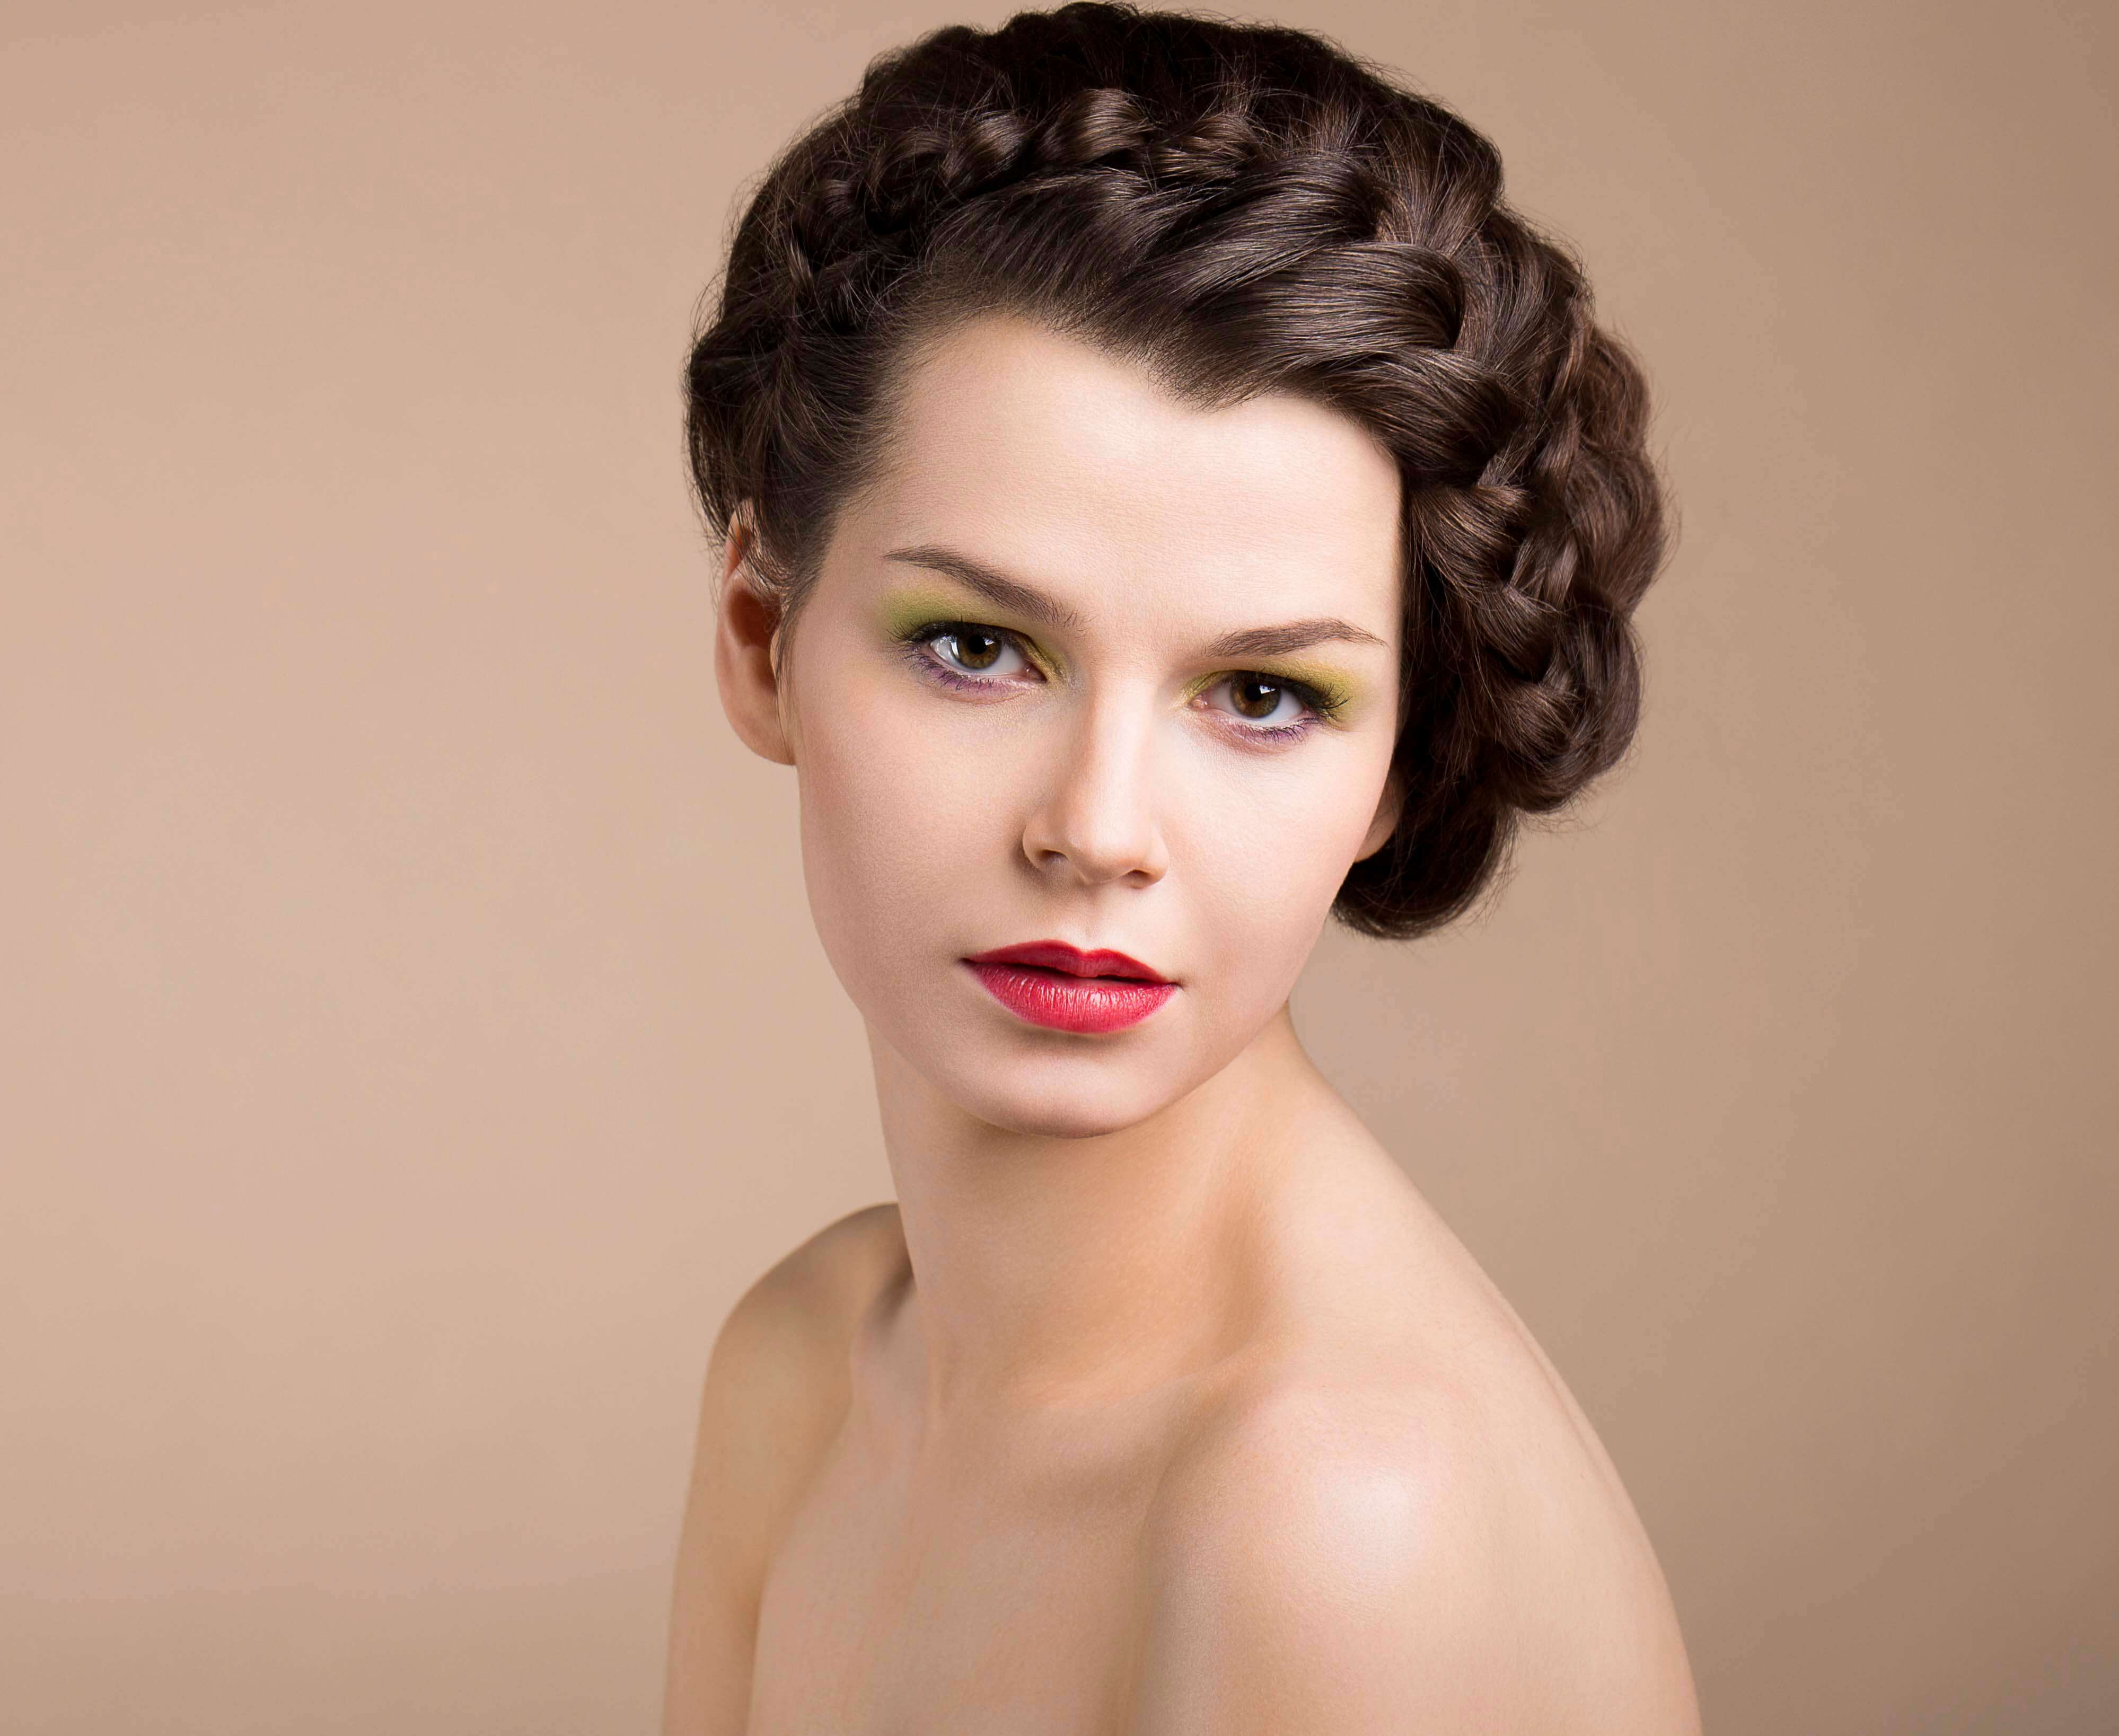 wedding hair updos: 5 elegant looks perfect for the occasion